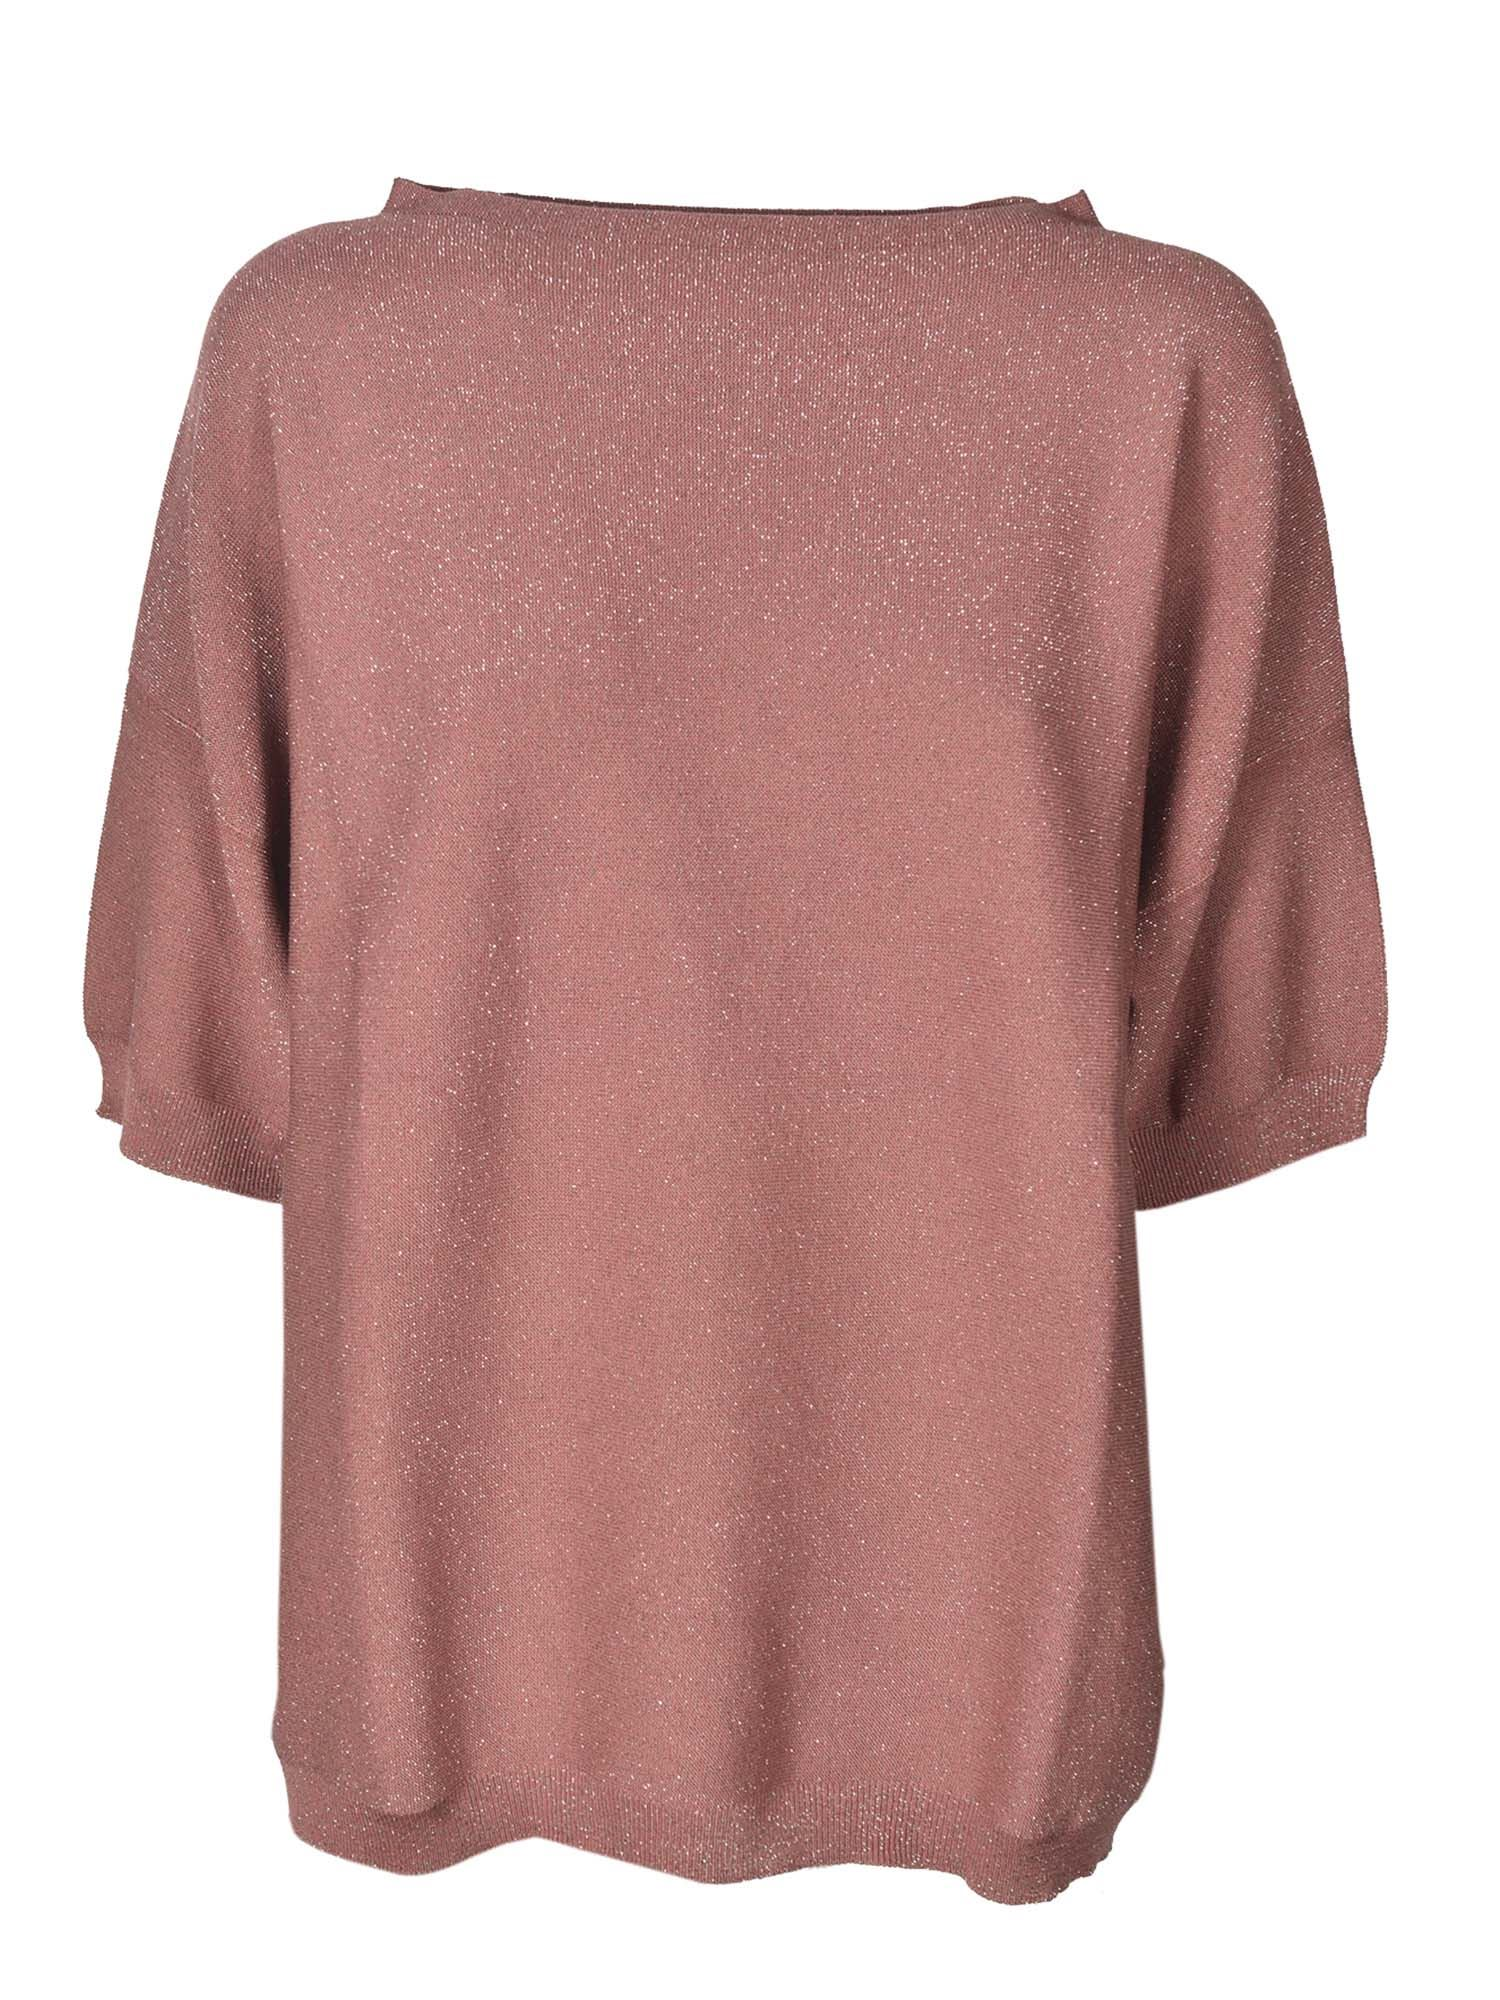 Fabiana Filippi Cottons SHORT SLEEVED SWEATER IN LAMÉ PINK